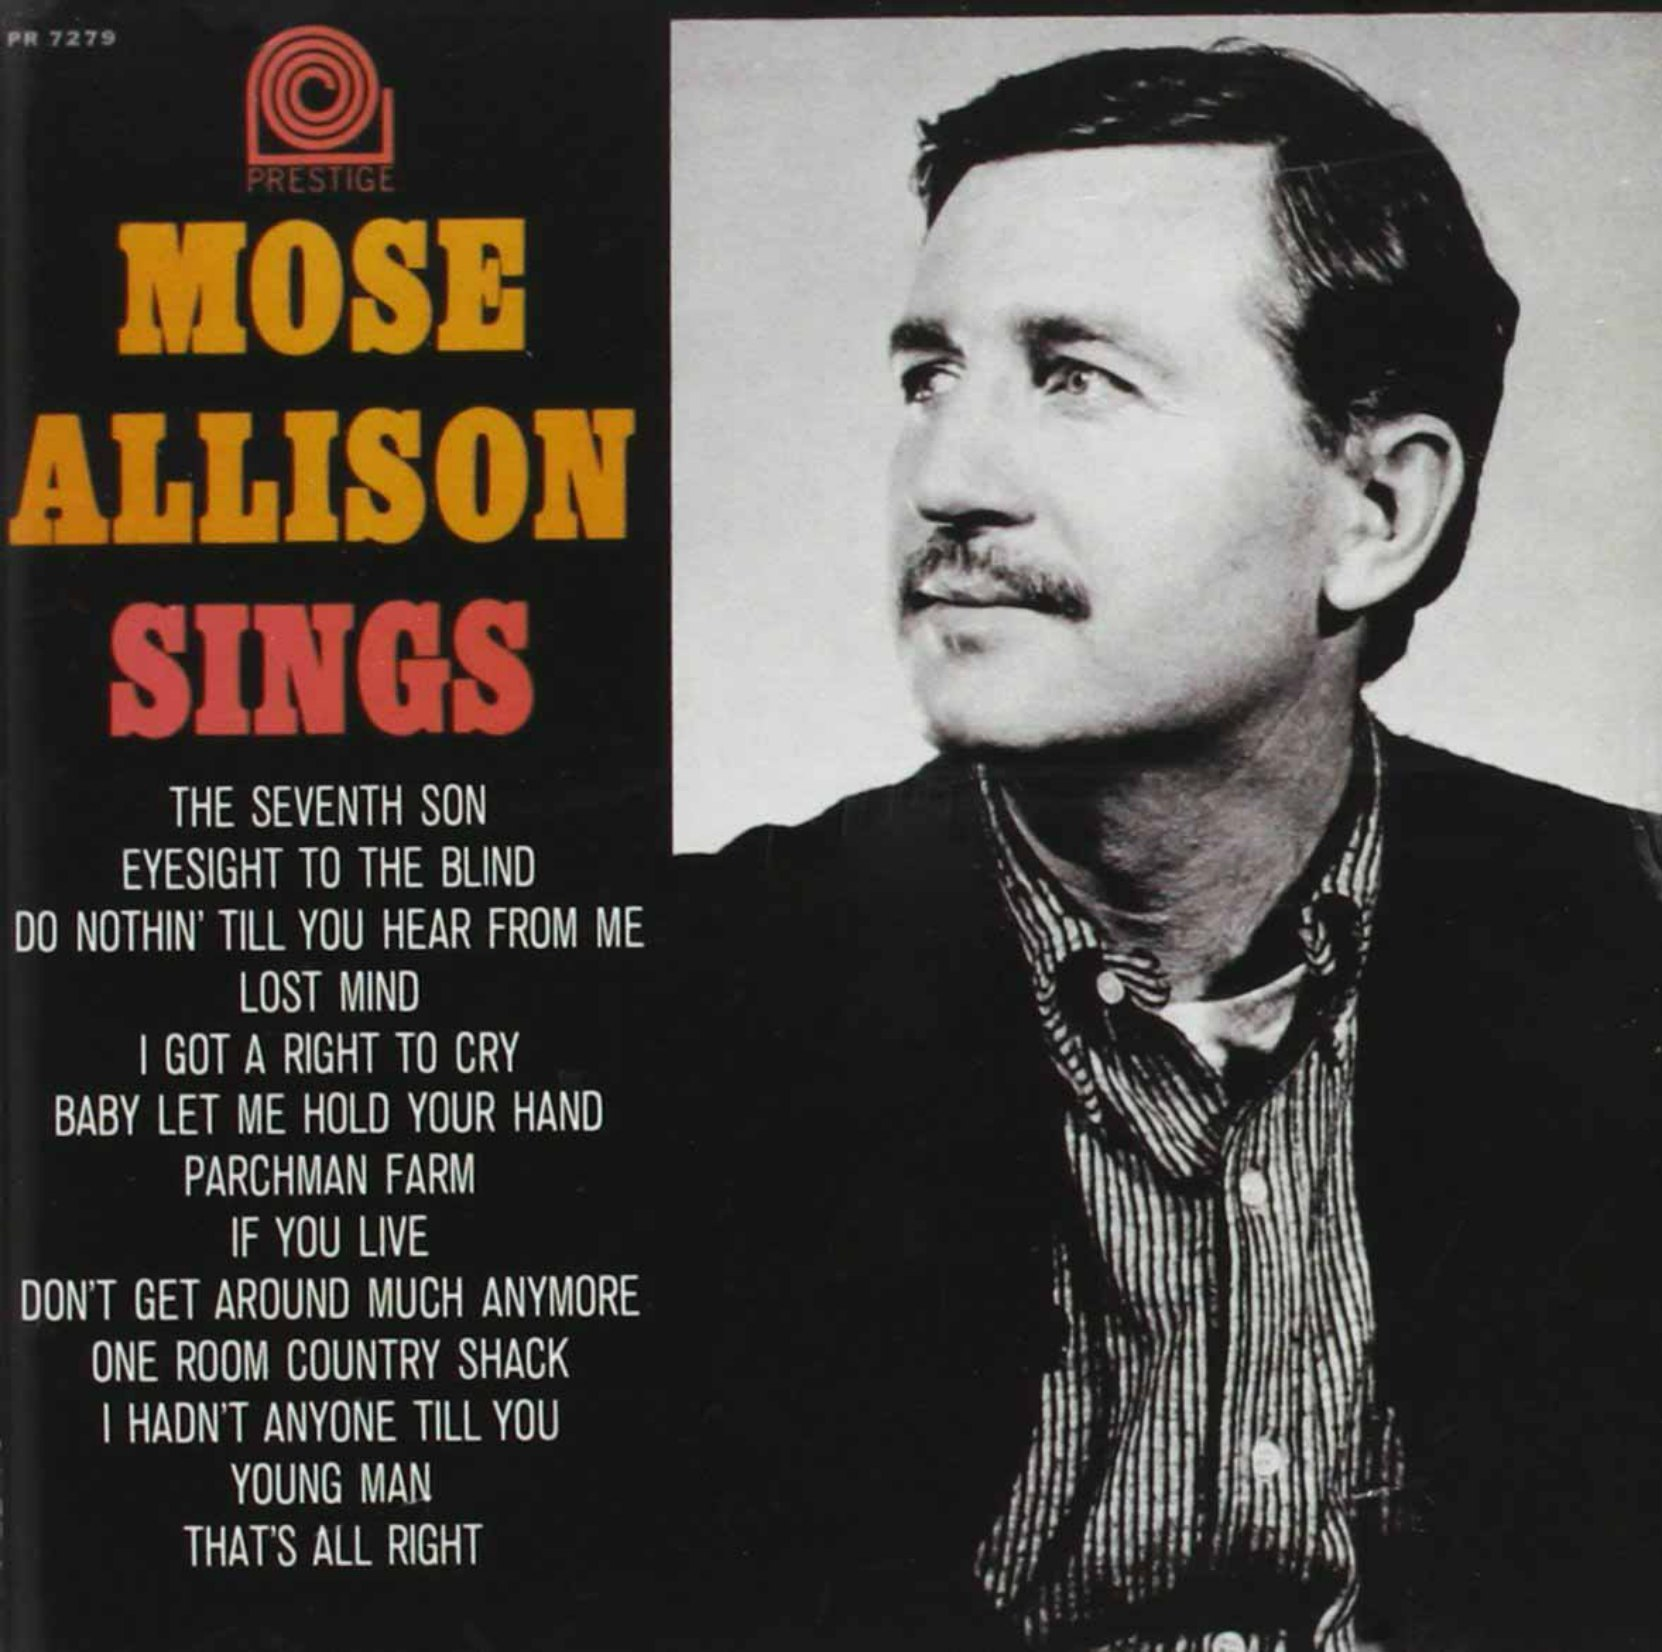 CD cover, Moses Allison Sings by Moses Allison, on Prestige Records